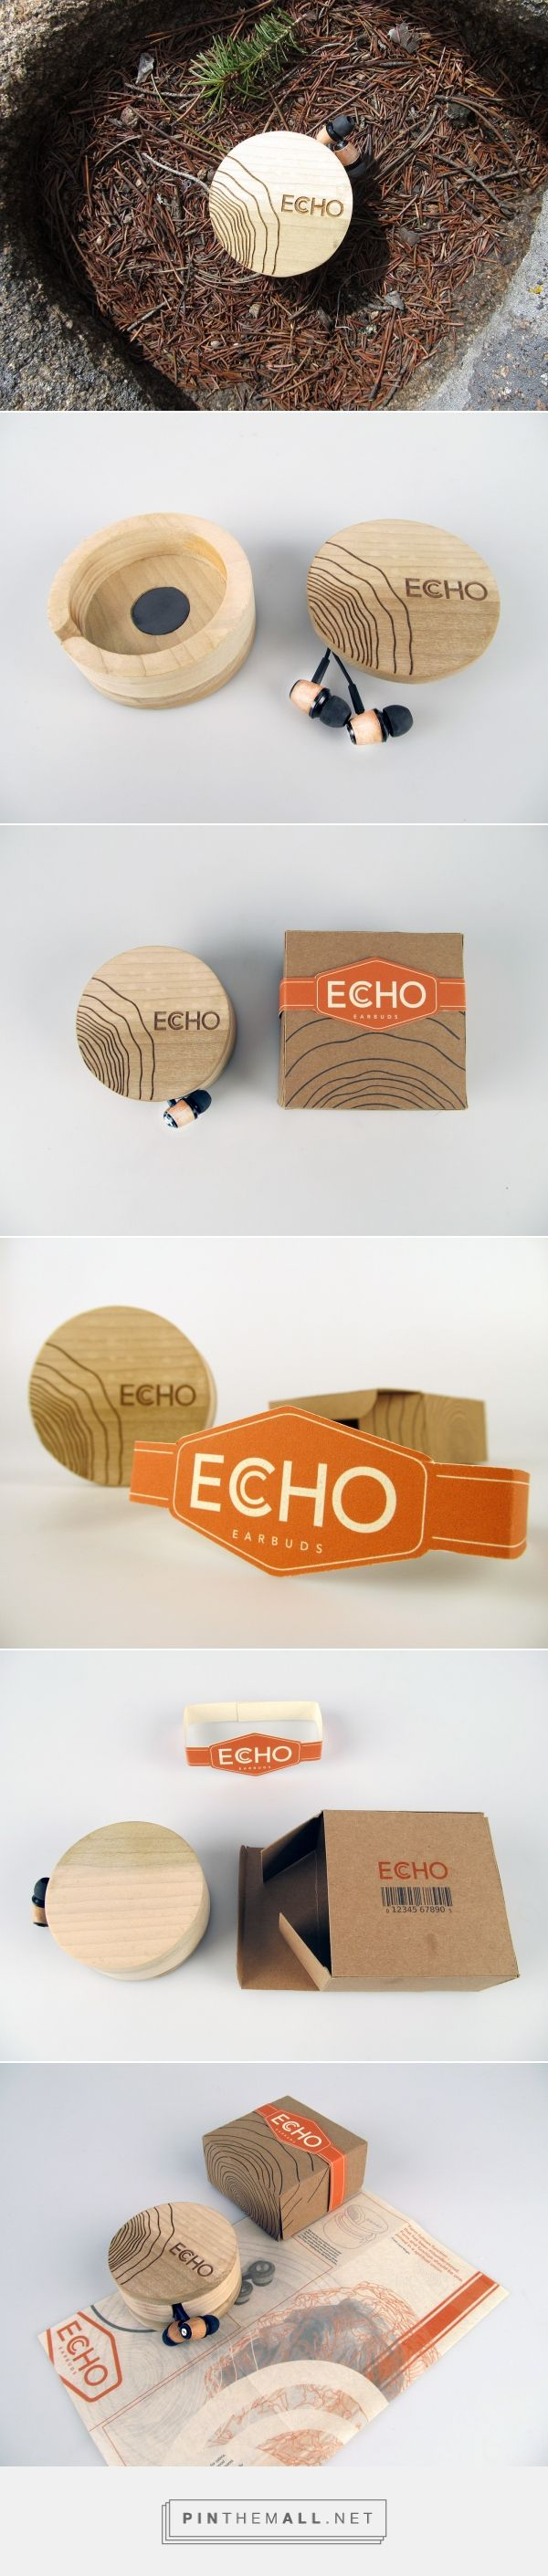 Industrial design and packaging for Echo Earbuds (Industrial/Package design) on Behance by Brandon Stacey Tulsa, OK curated by Packaging Diva PD. Product design for a practical way of storing your headphones so they stay tangle free.